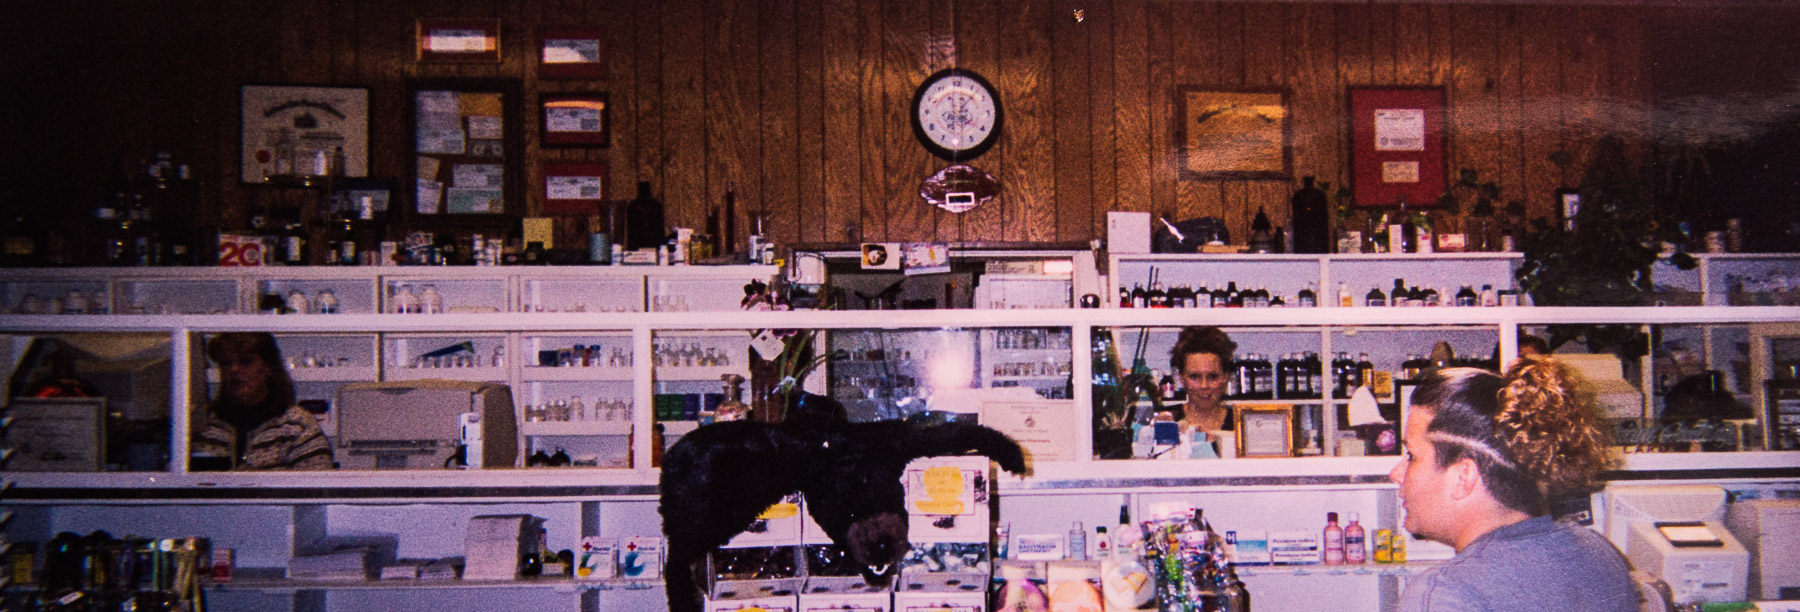 1990's Elmore Pharmacy Photo